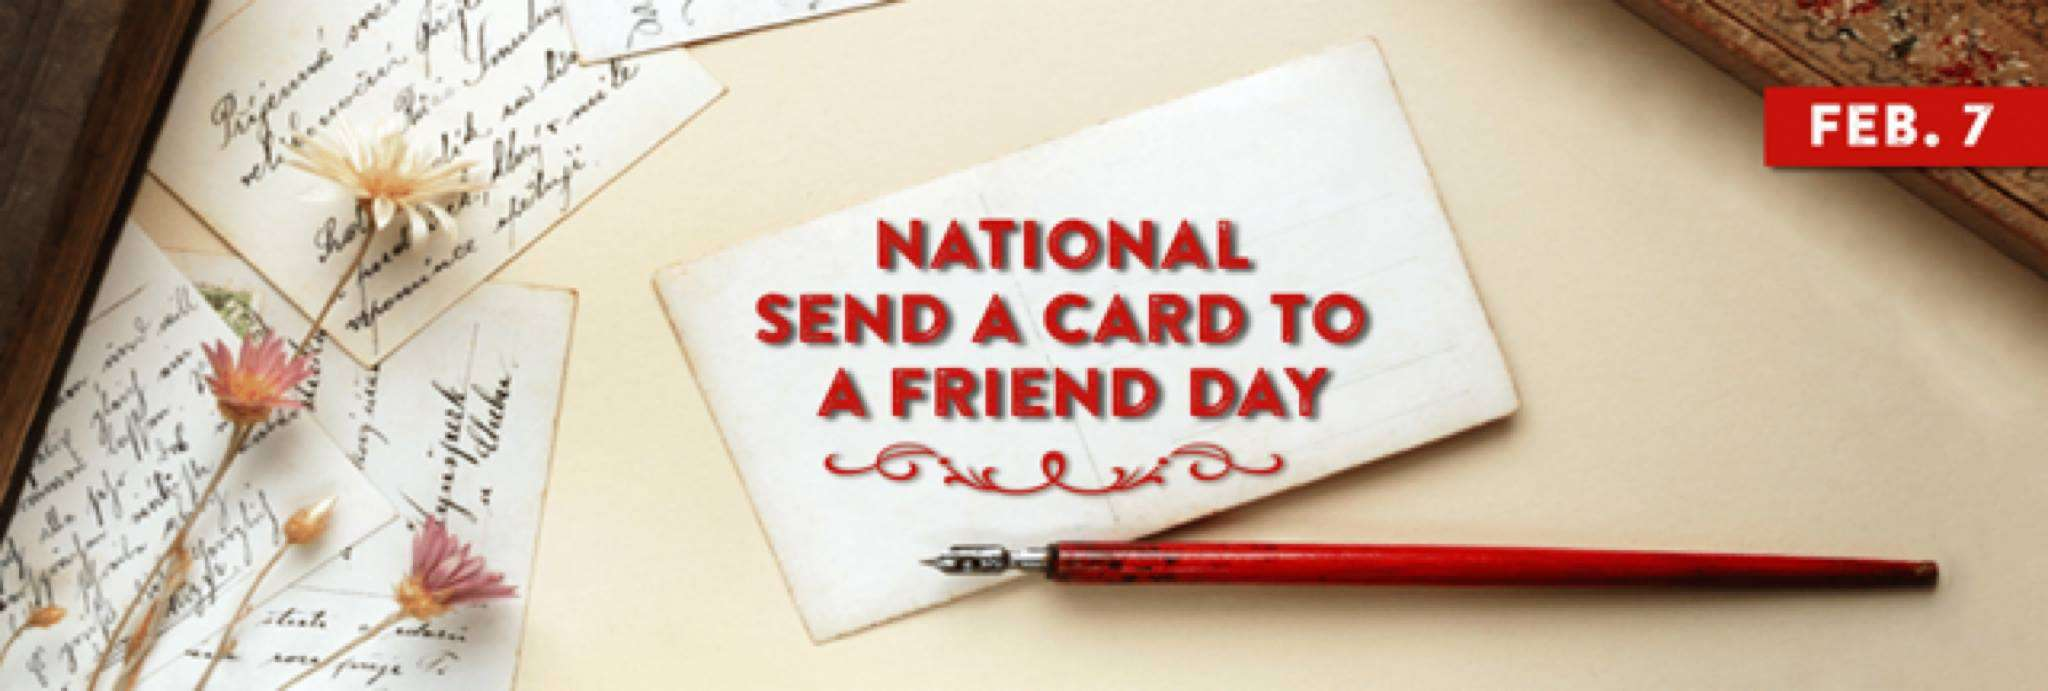 National Send a Card to a Friend Day Wishes Beautiful Image